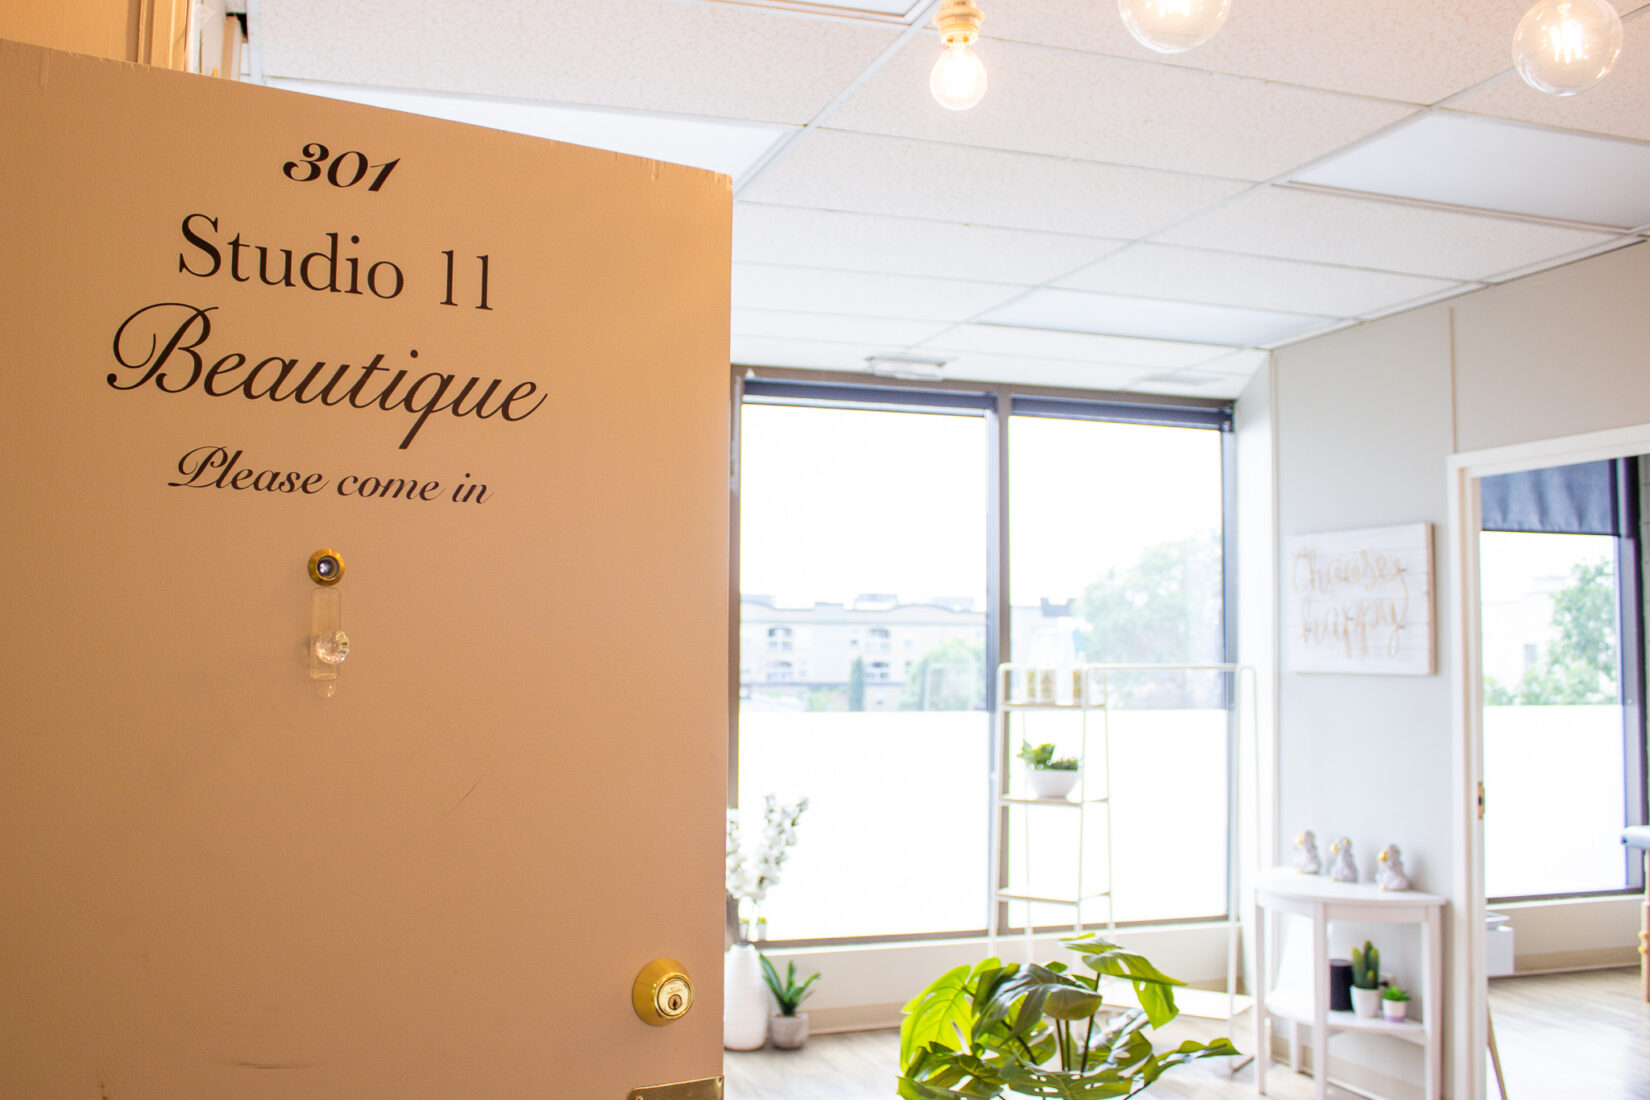 Business Spotlight: Studio 11 Beautique